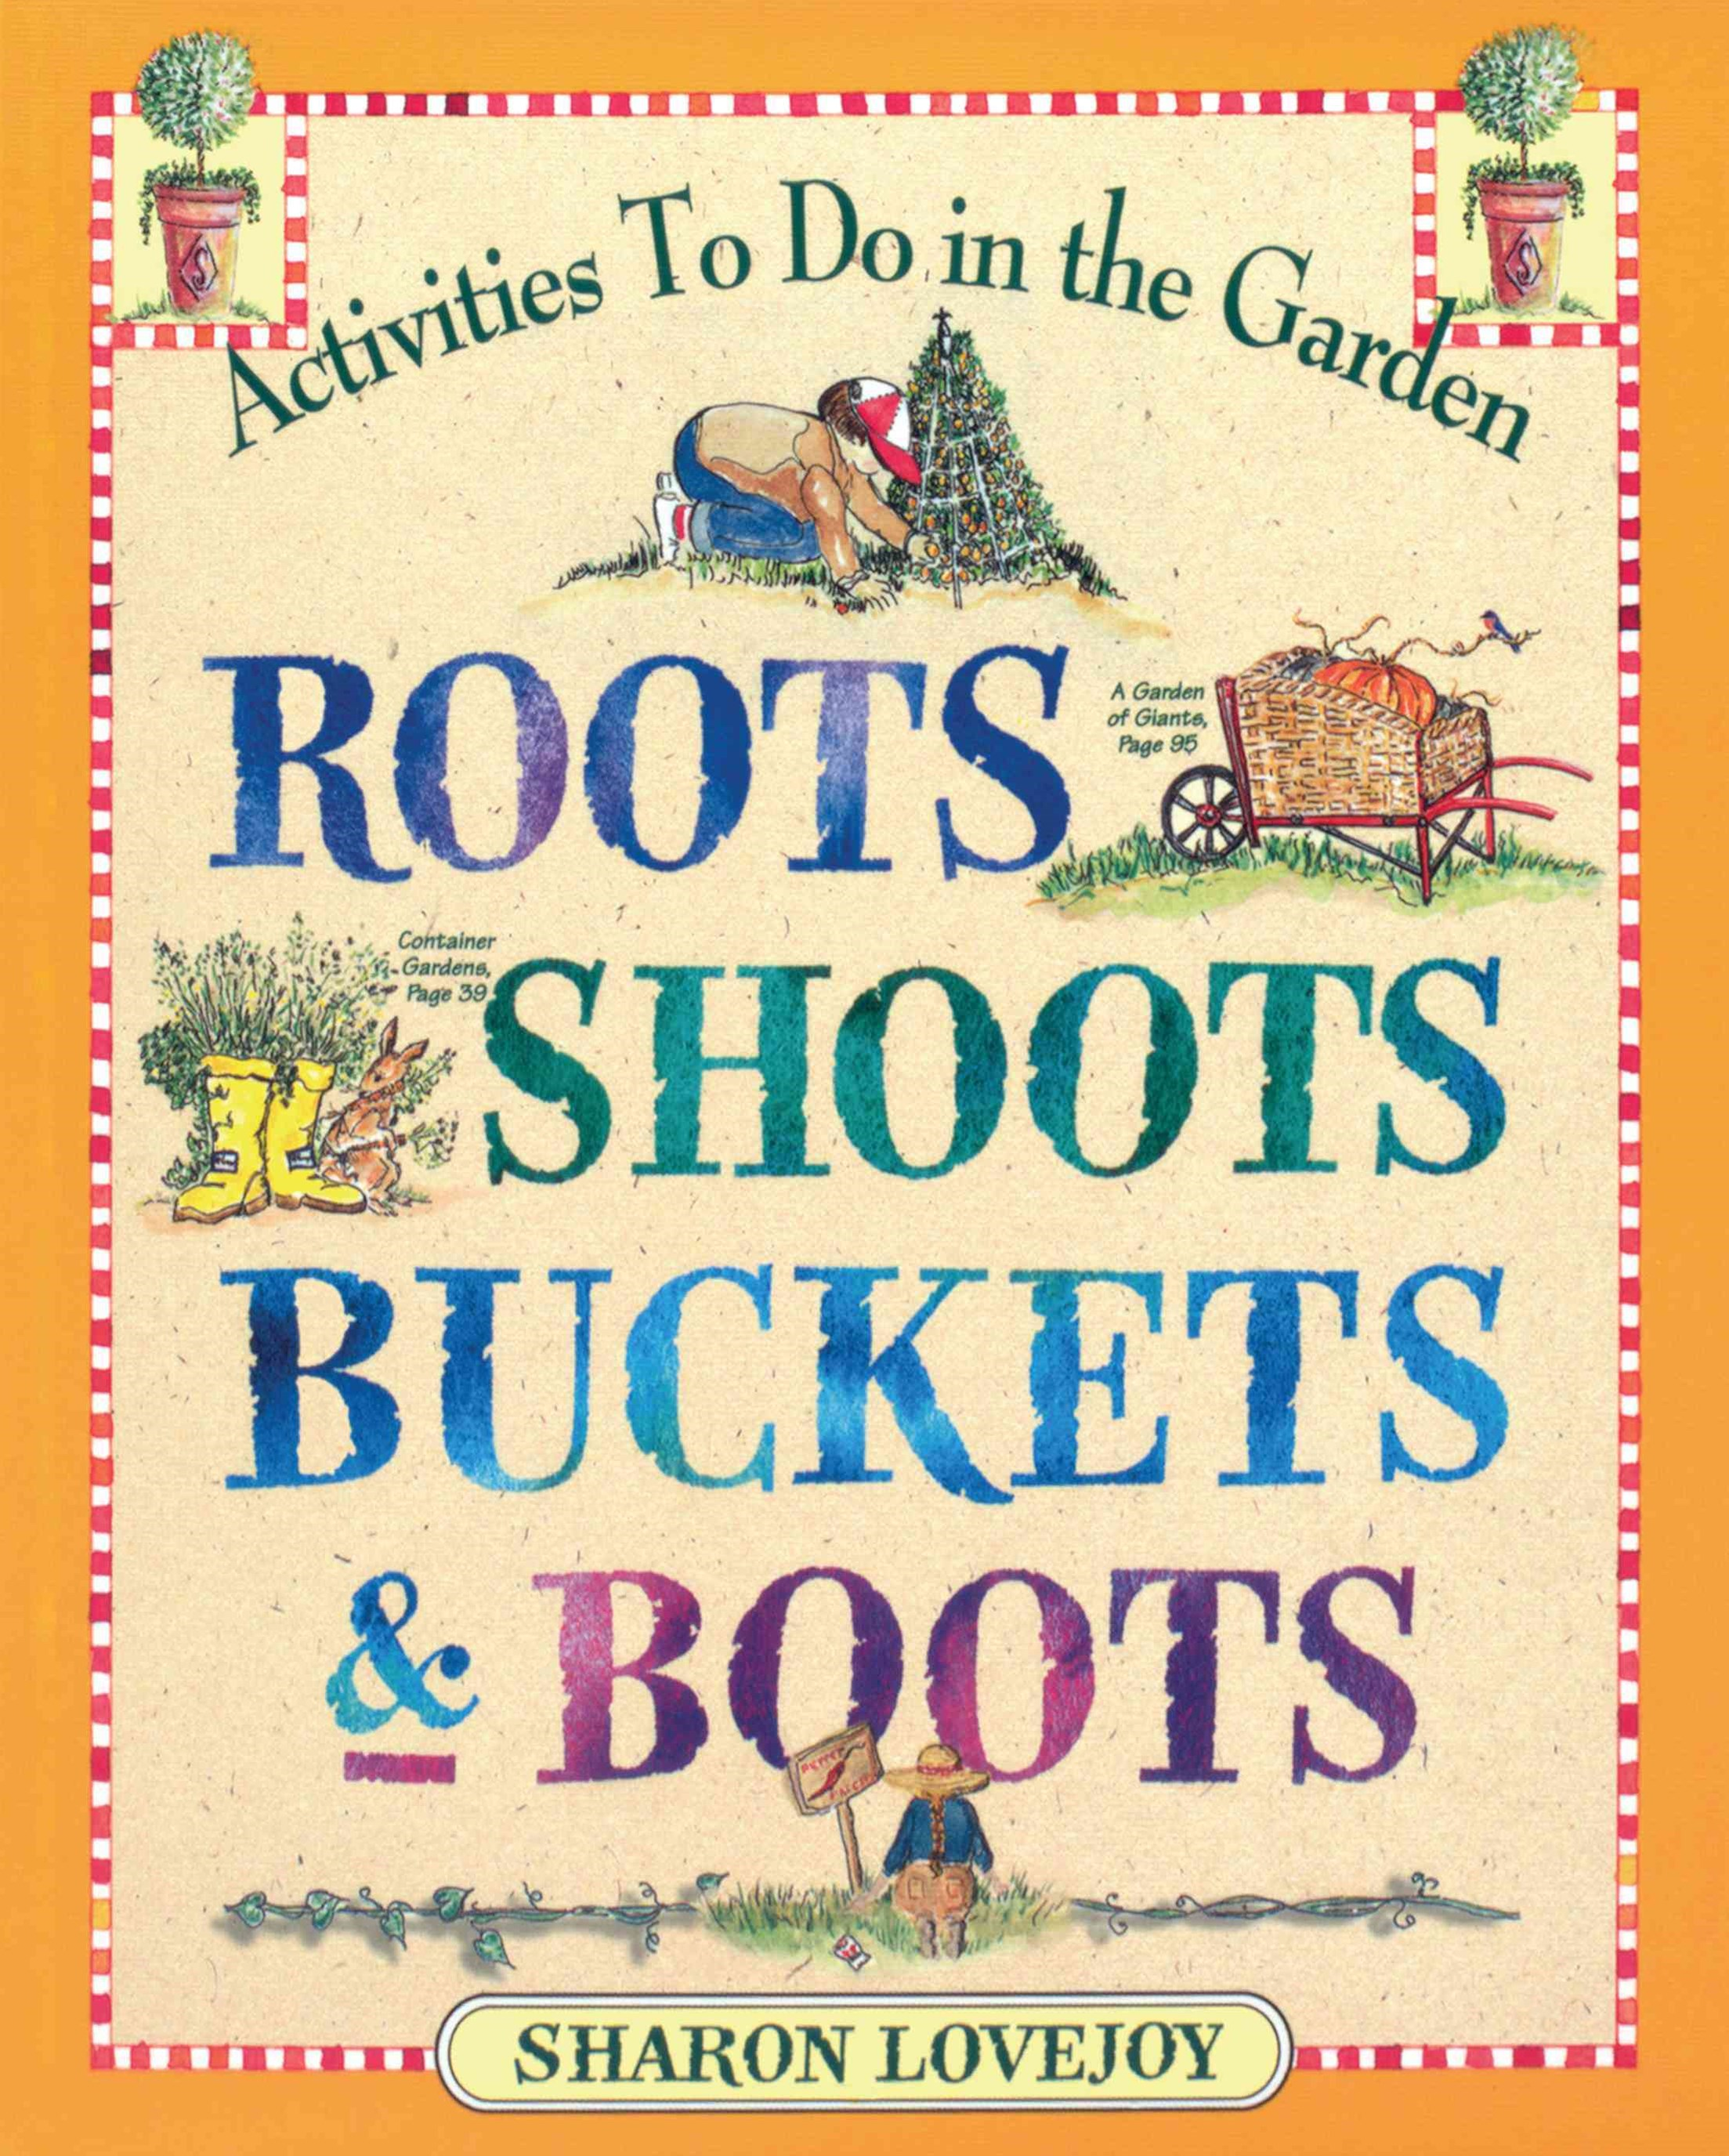 Roots, Shoots, Buckets and Boots